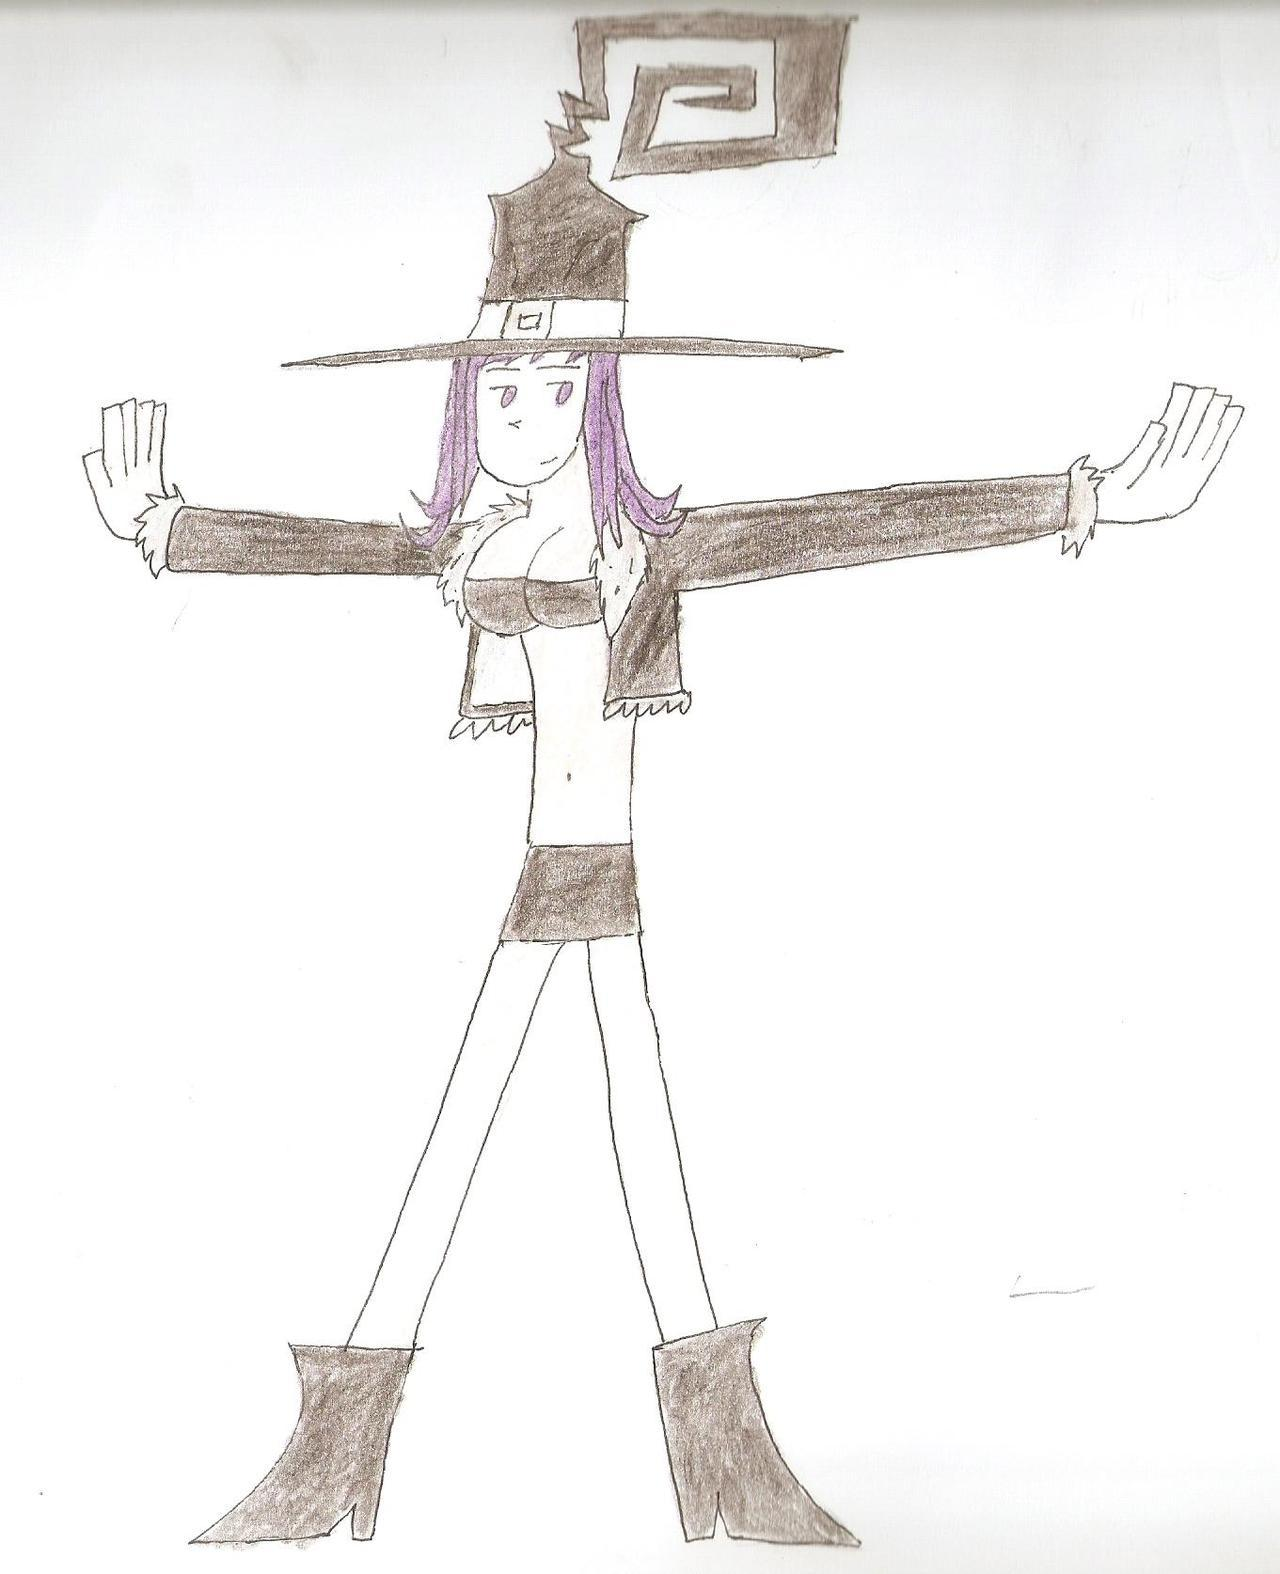 i made this weird drawing of blair from soul eater.